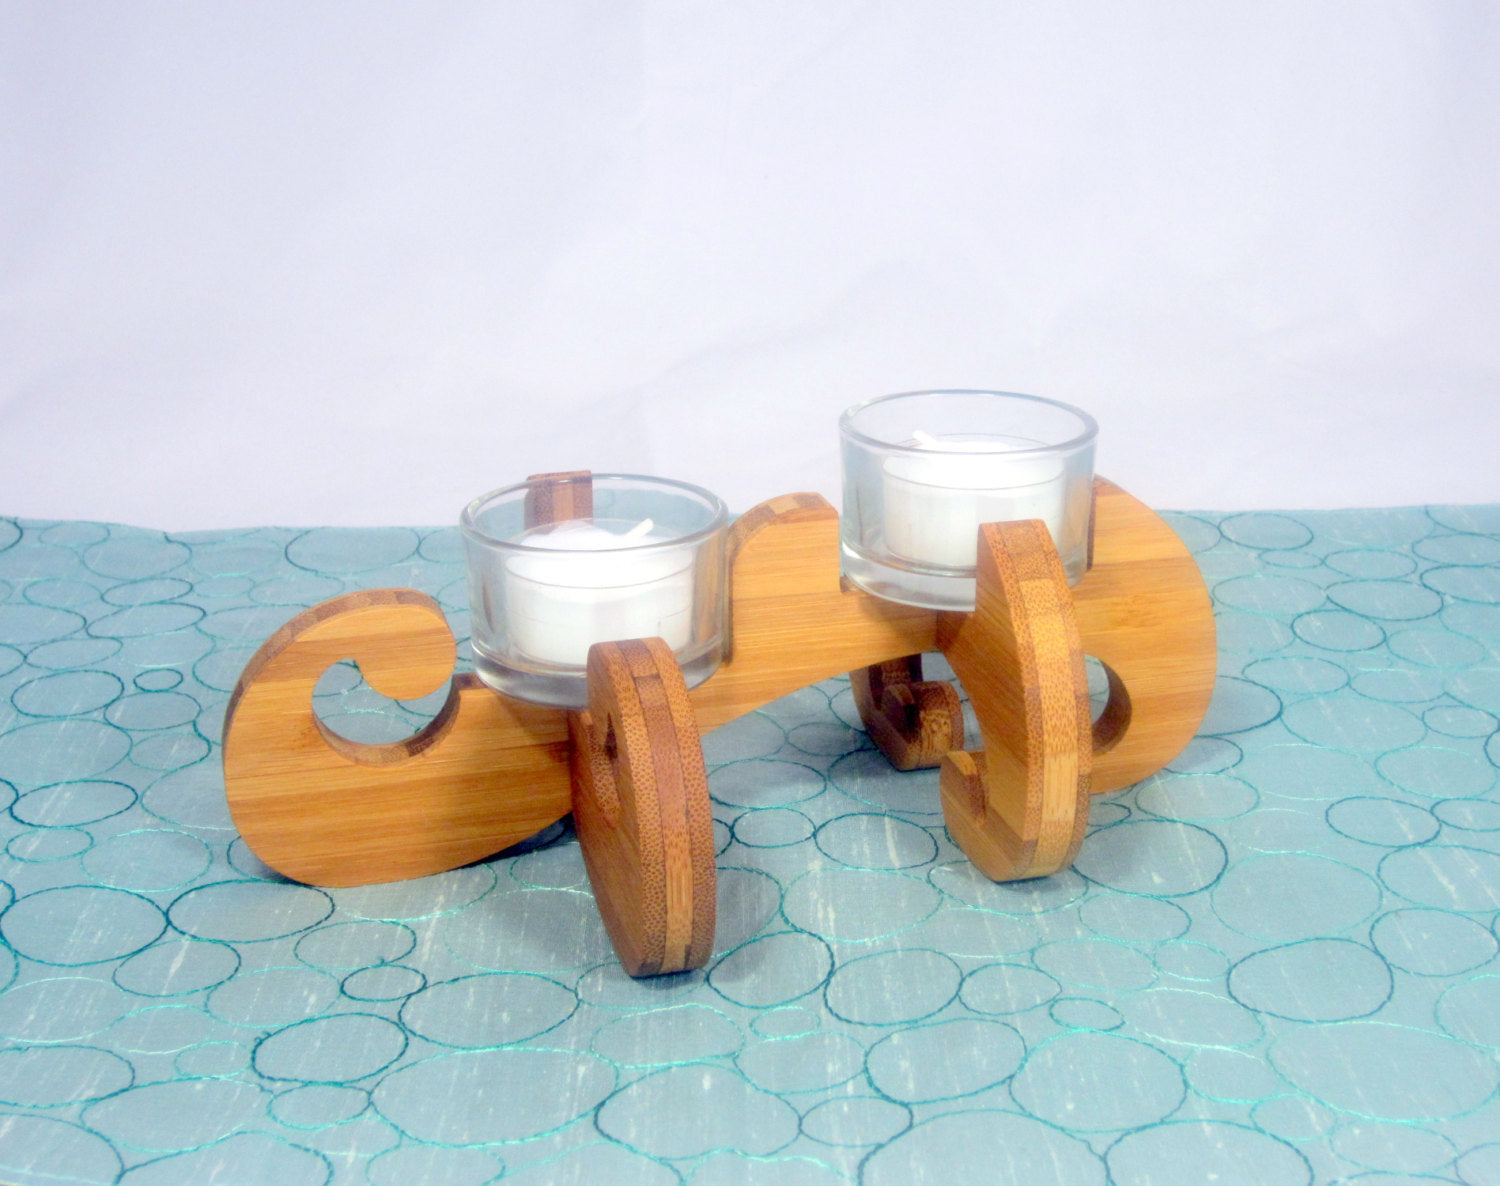 K.O.T. Tea Light Holder in bamboo